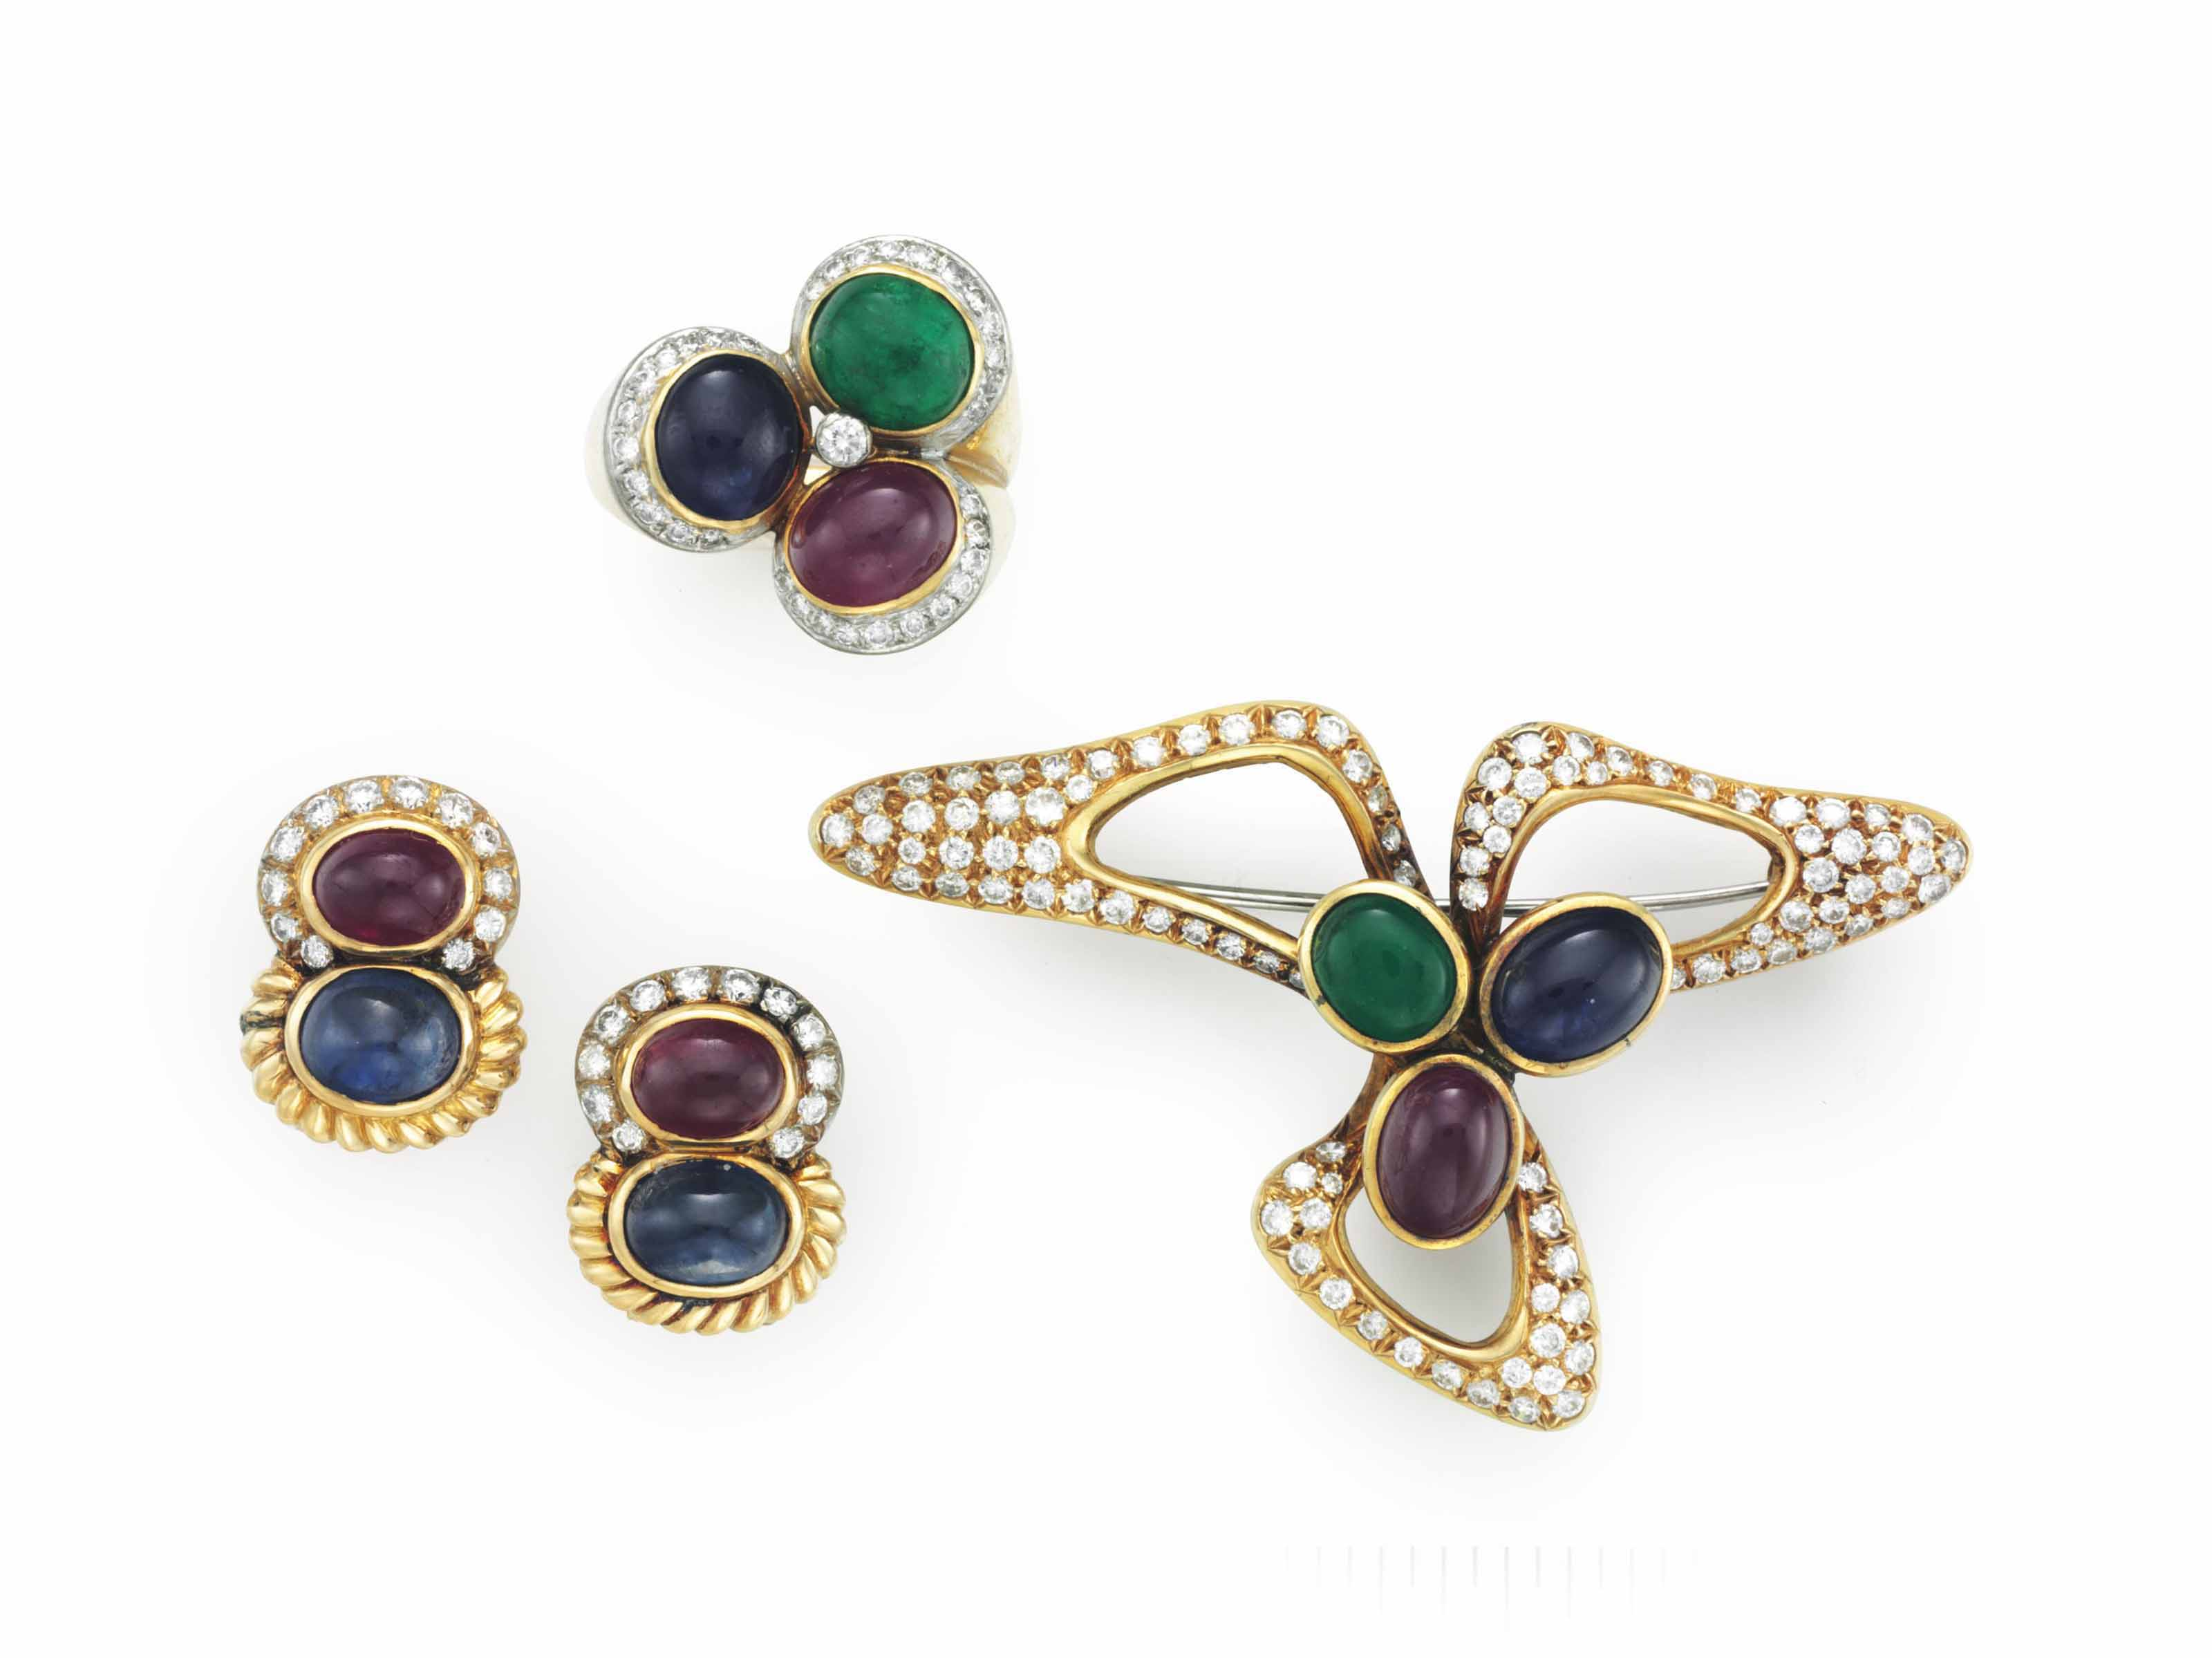 A SUITE OF 18K YELLOW GOLD AND MULTI-GEM JEWELRY